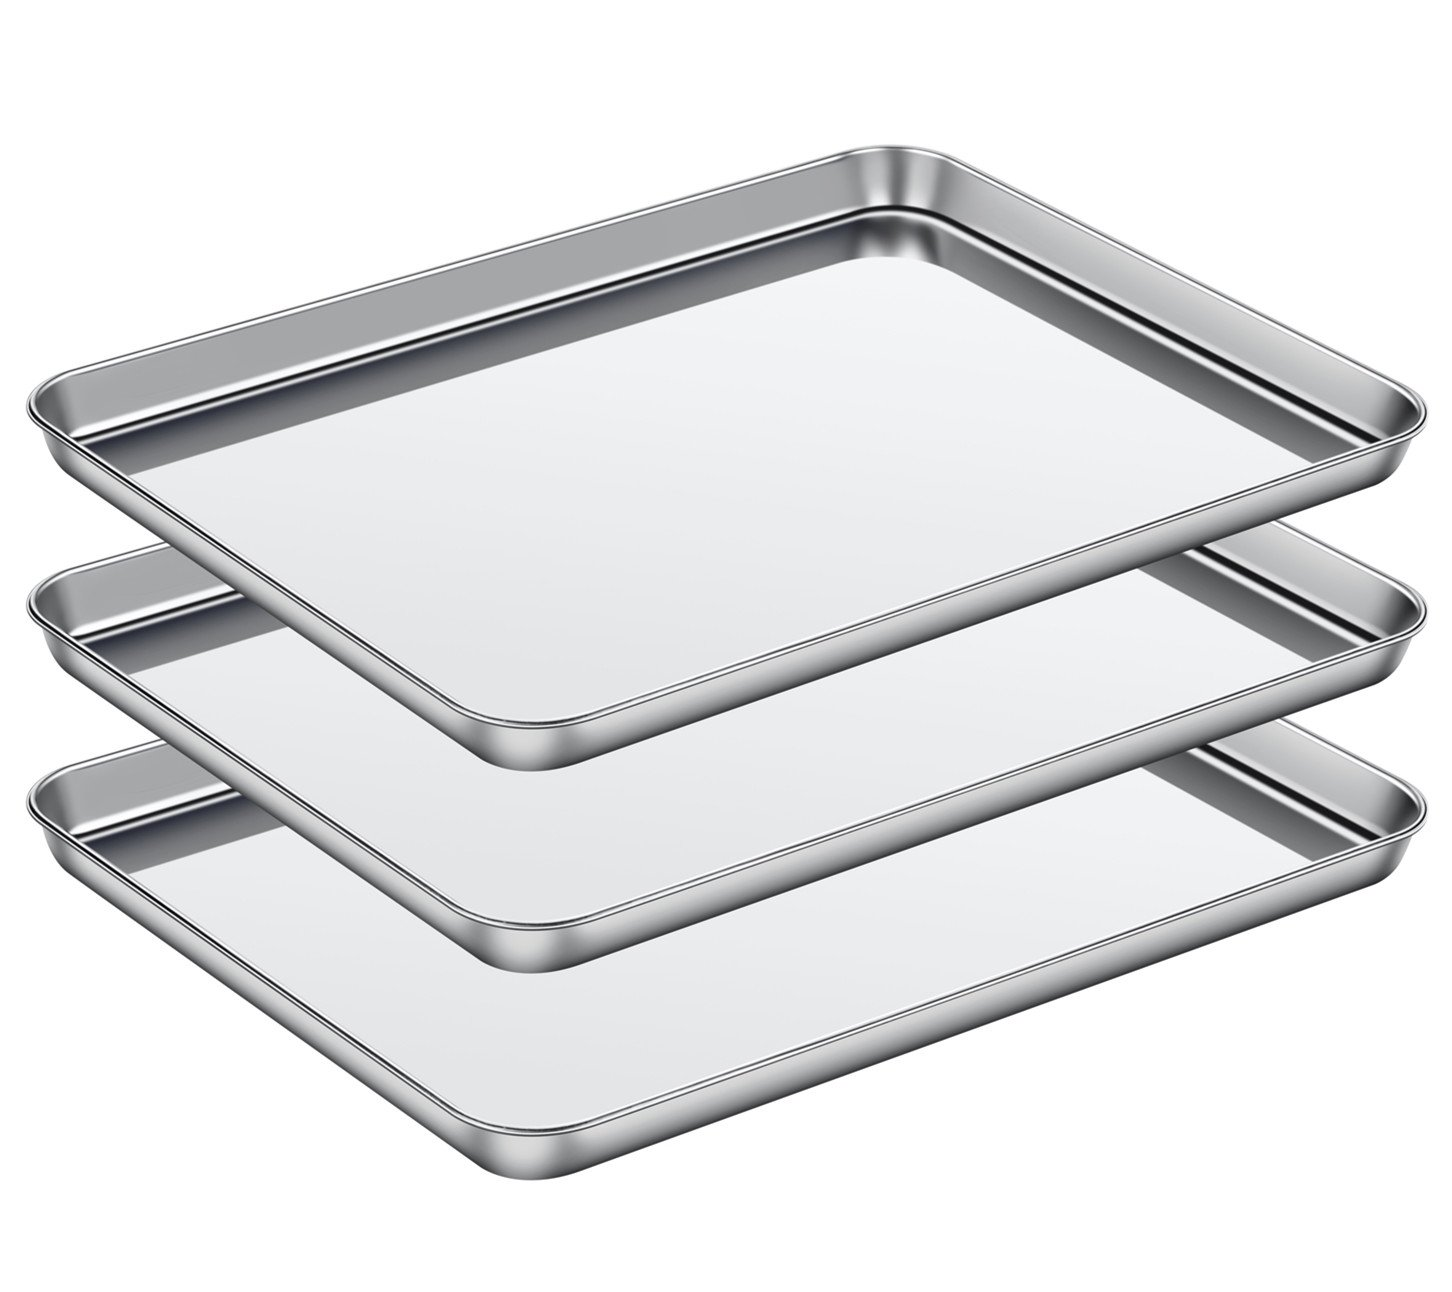 ASEL Baking Sheet Set of 3, Baking Pans 3 Pieces & Stainless Steel Cookie Sheets & Toaster Oven Tray Pans, Non Toxic & Healthy, Mirror & Easy Clean & Dishwasher Safe